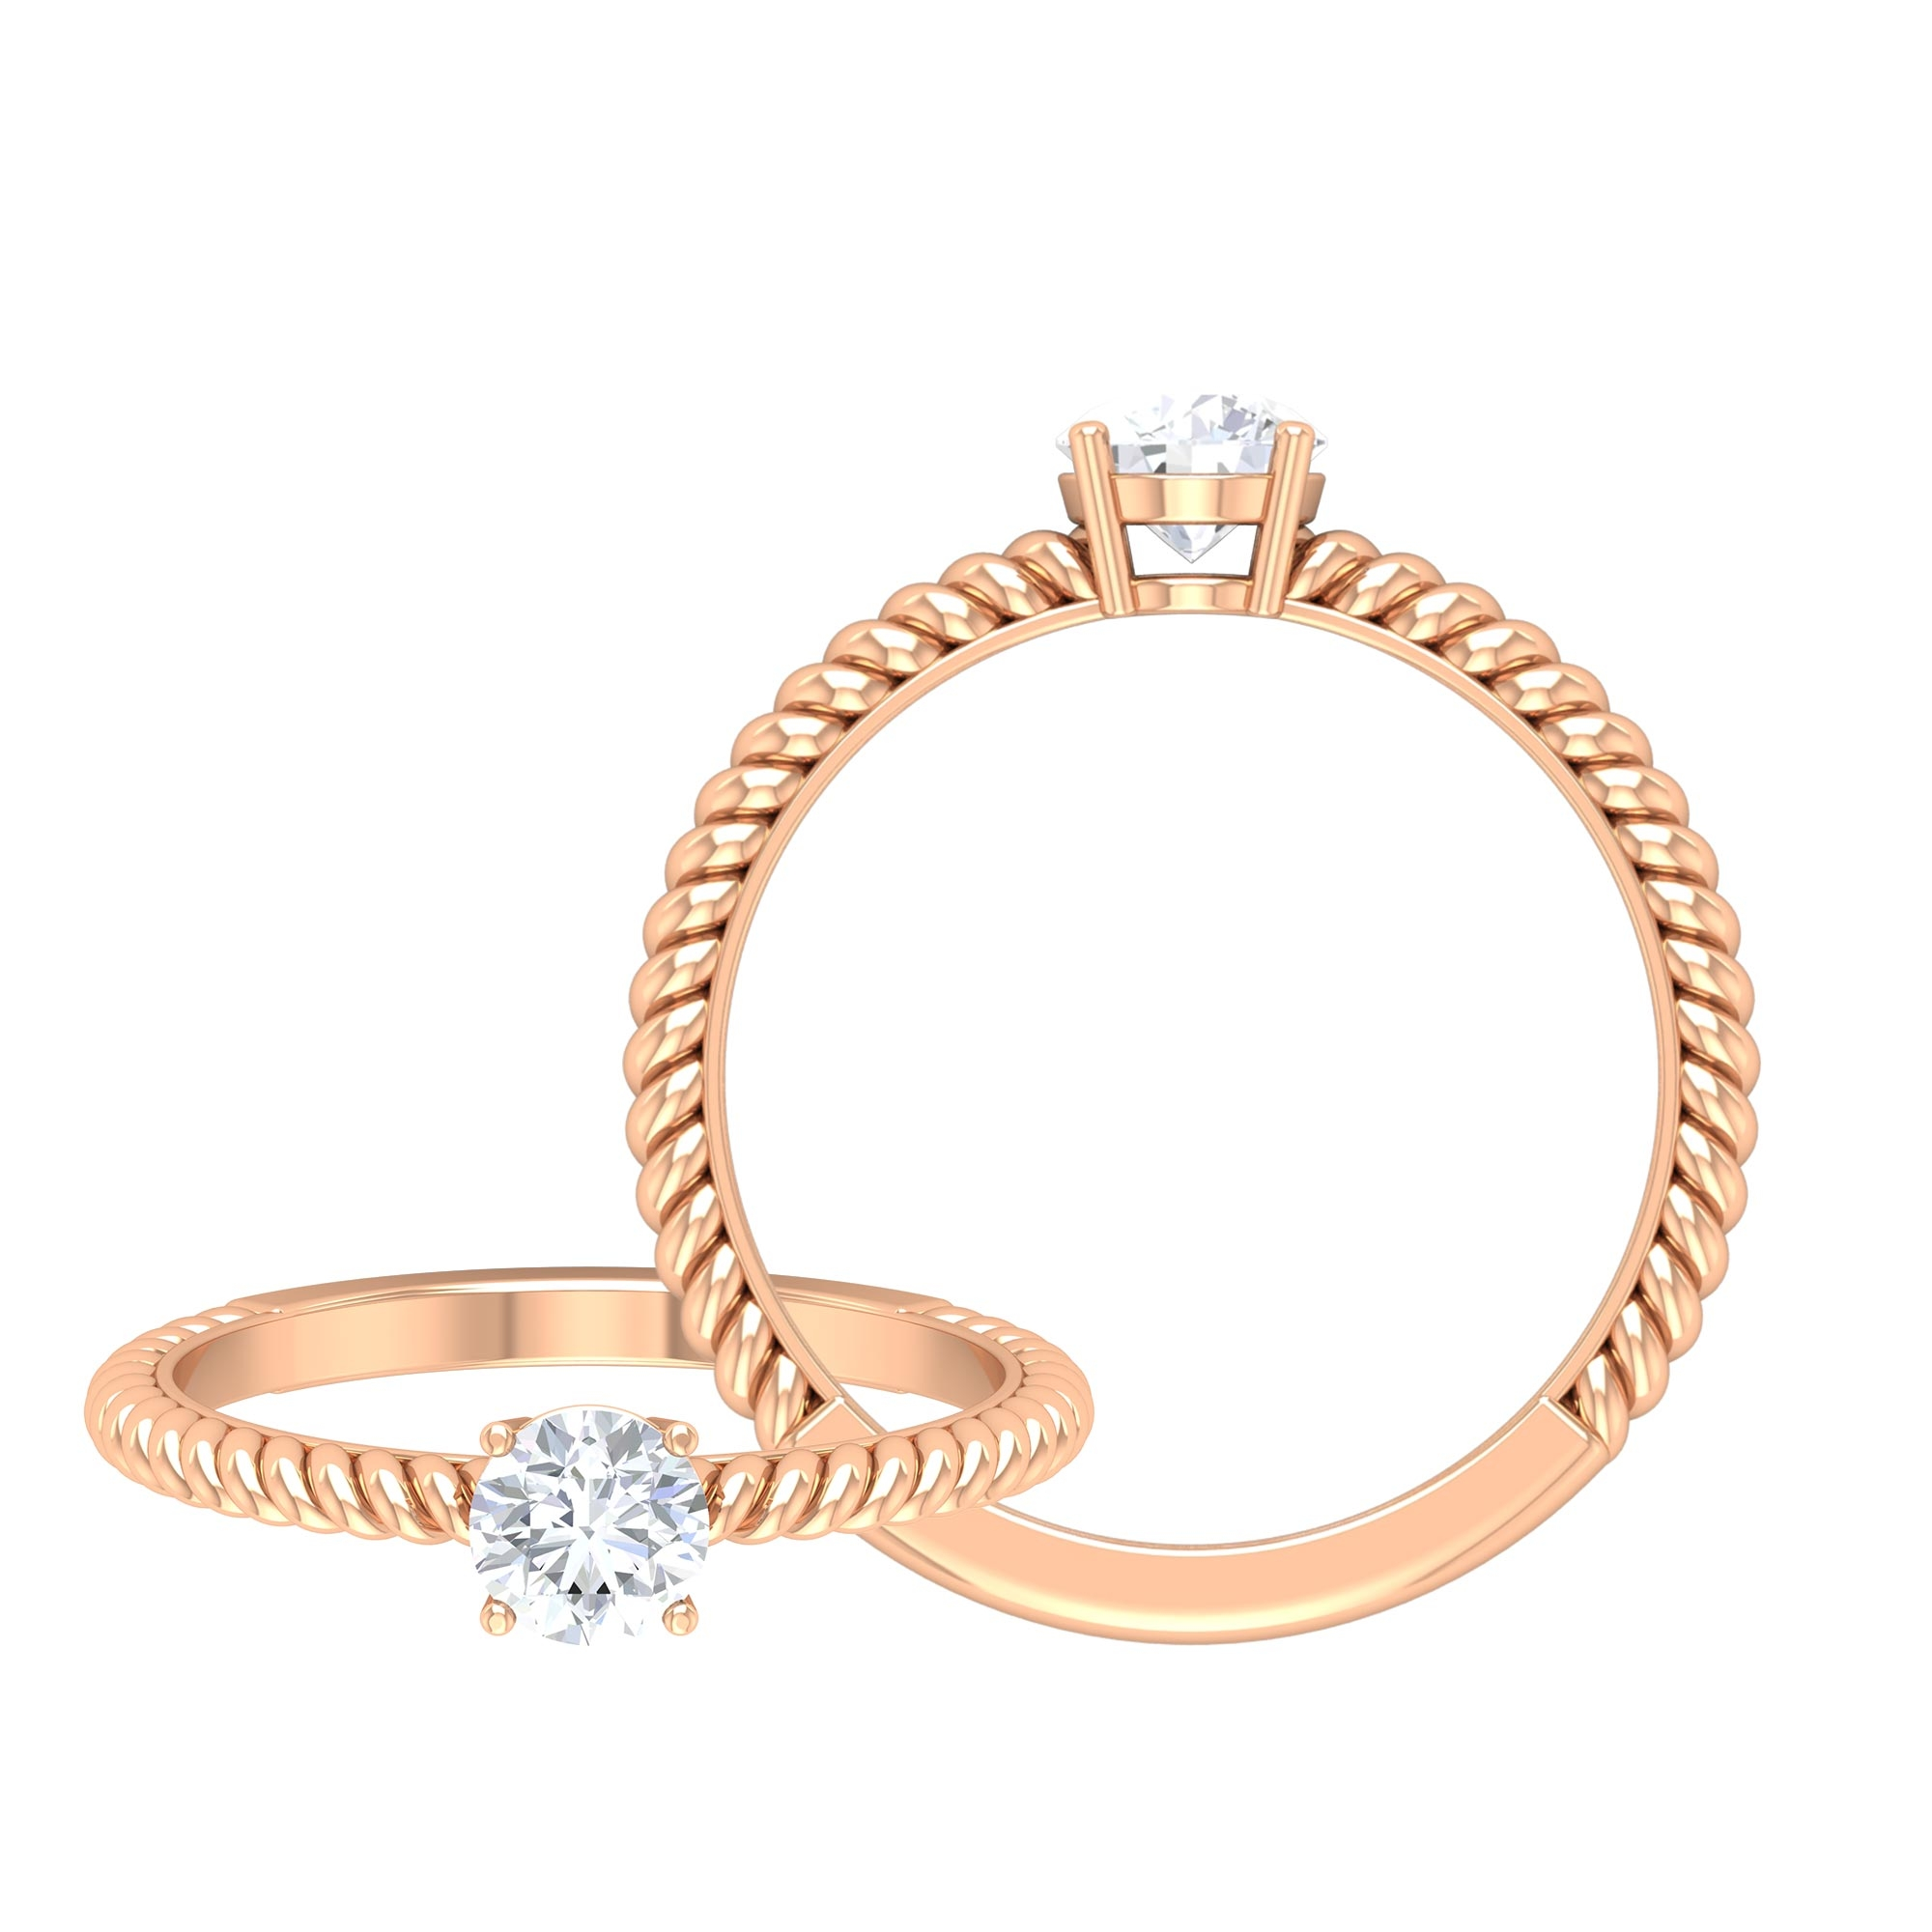 5 MM Round Cut Diamond Solitaire Ring in 4 Prong Setting with Twisted Rope Details